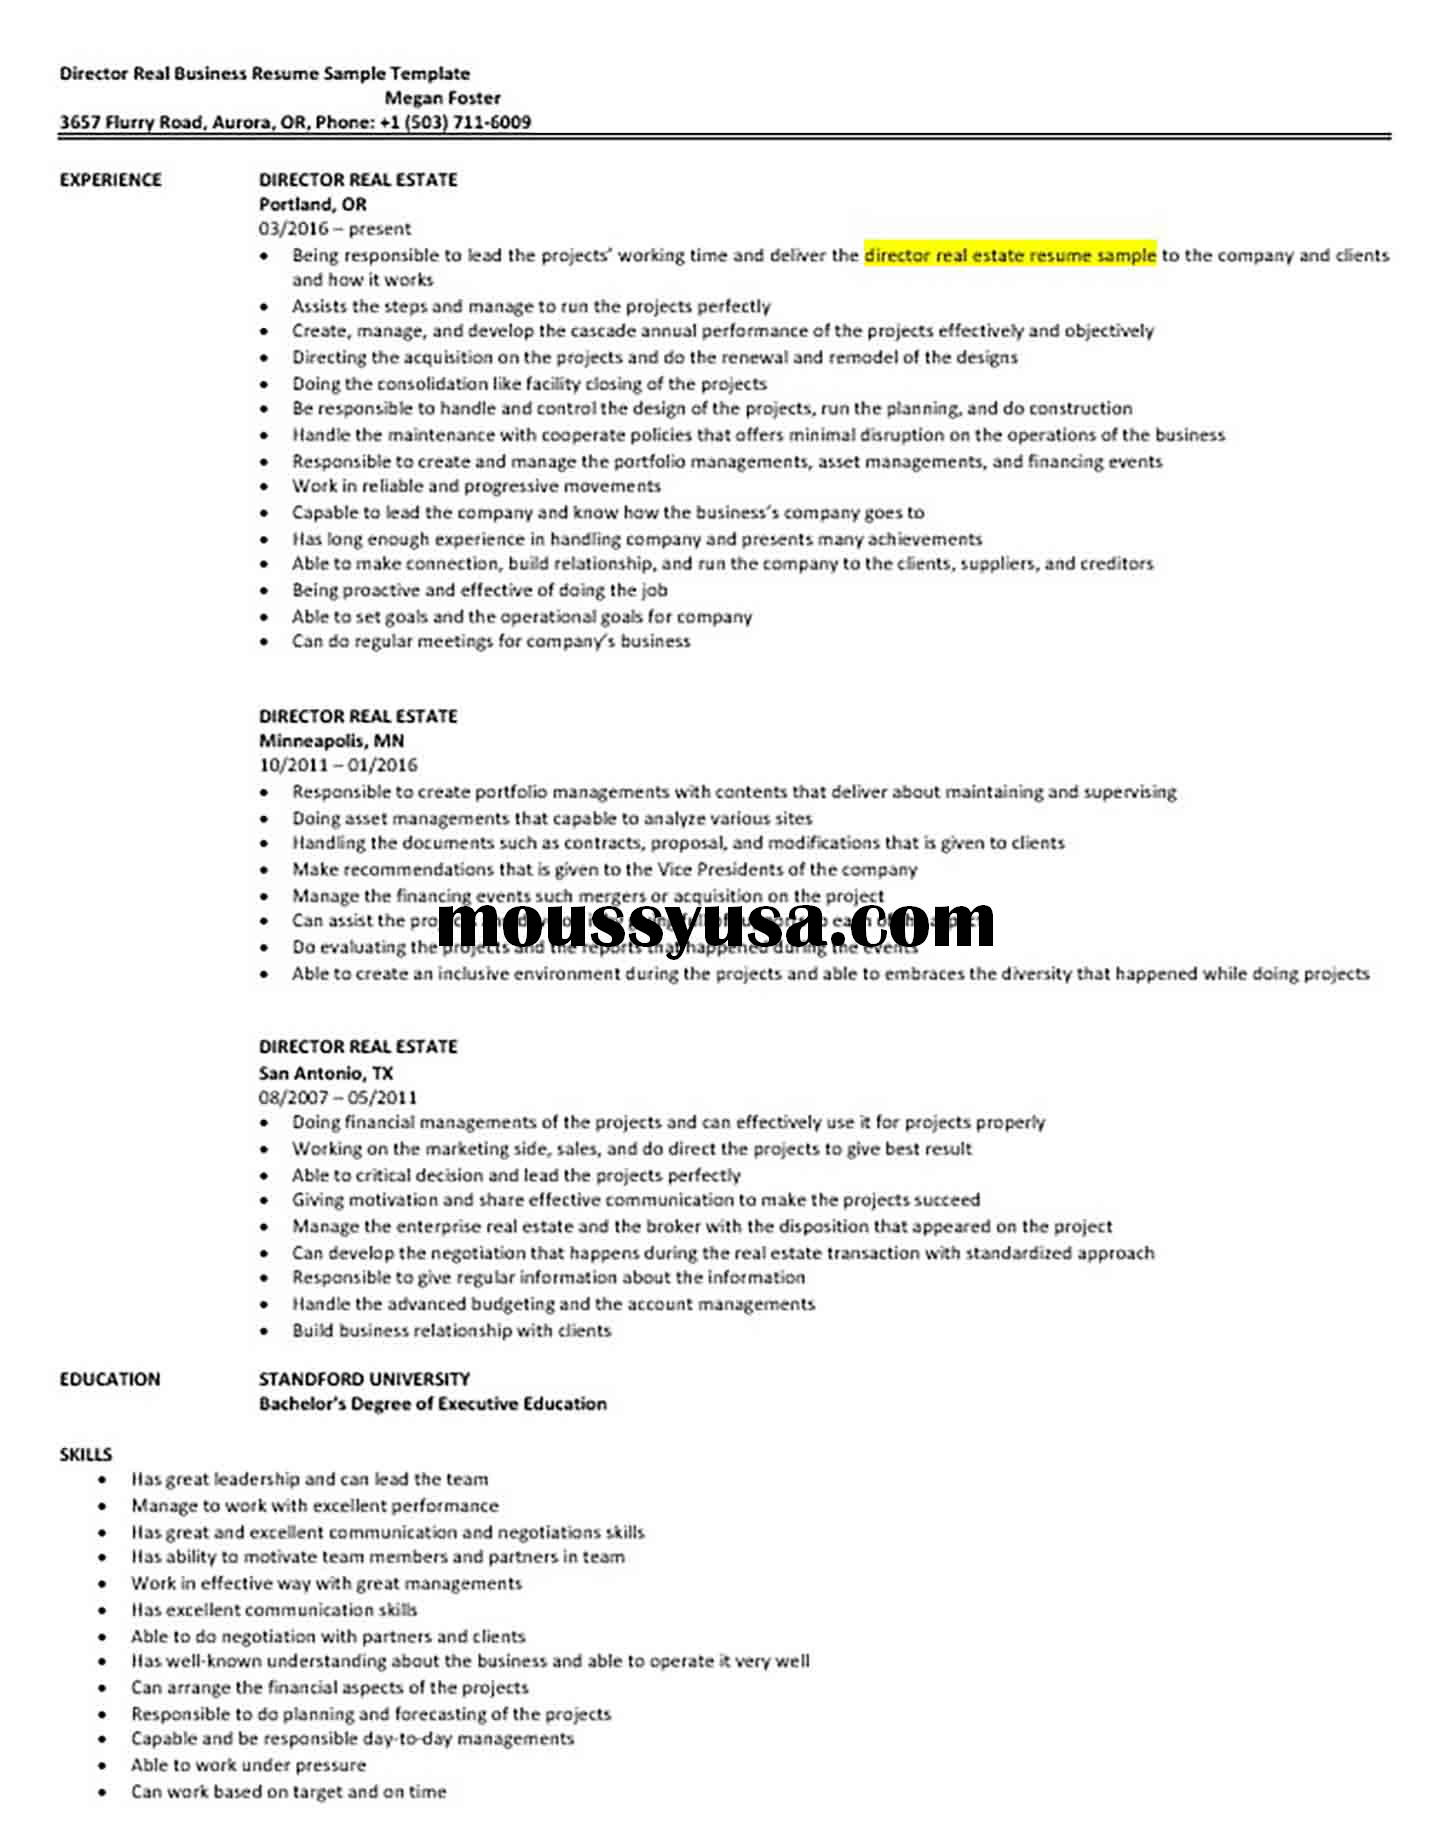 Director Real Business Resume Sample Template